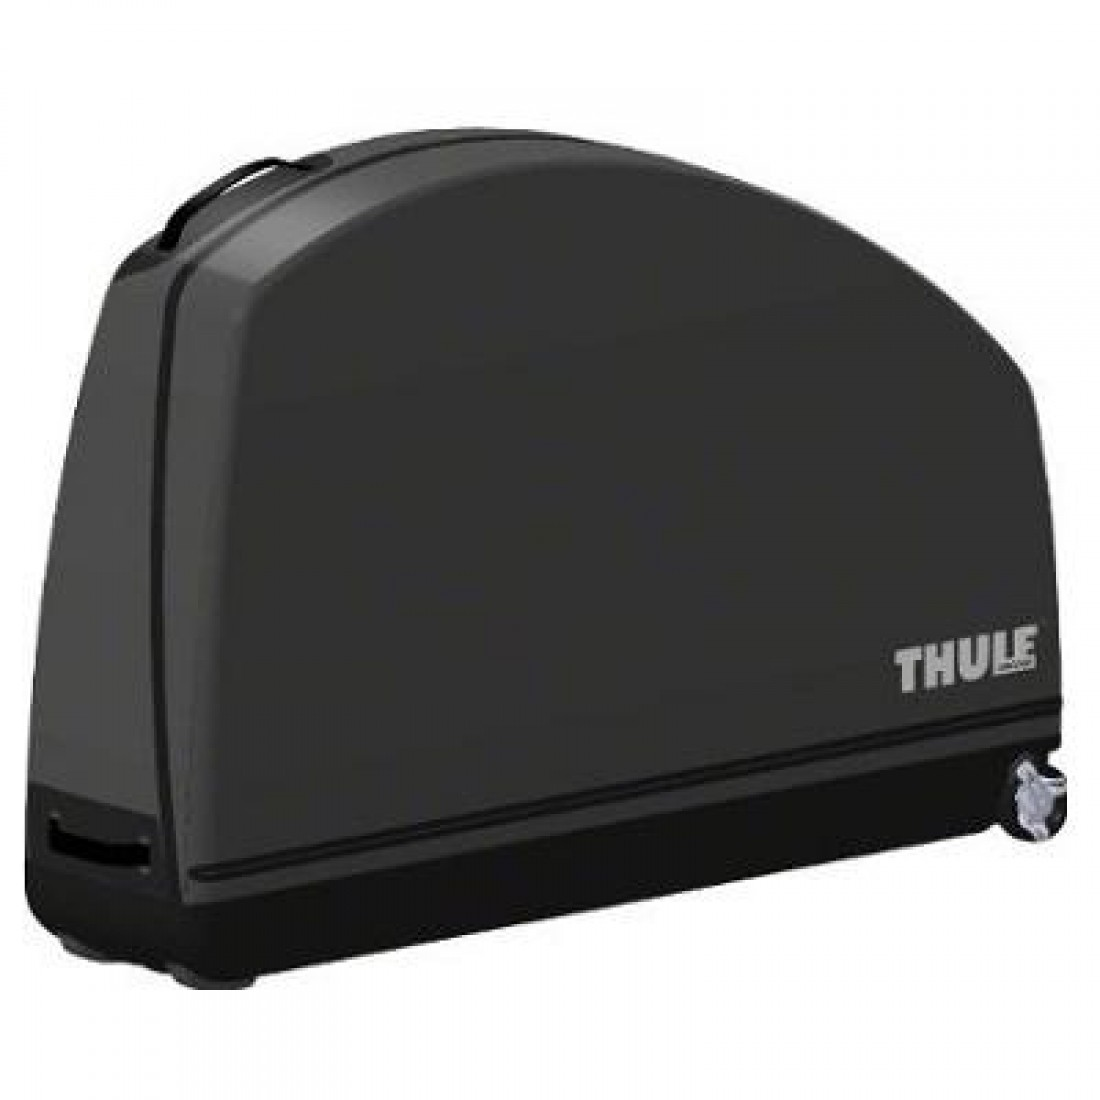 Thule Soft Bike Case